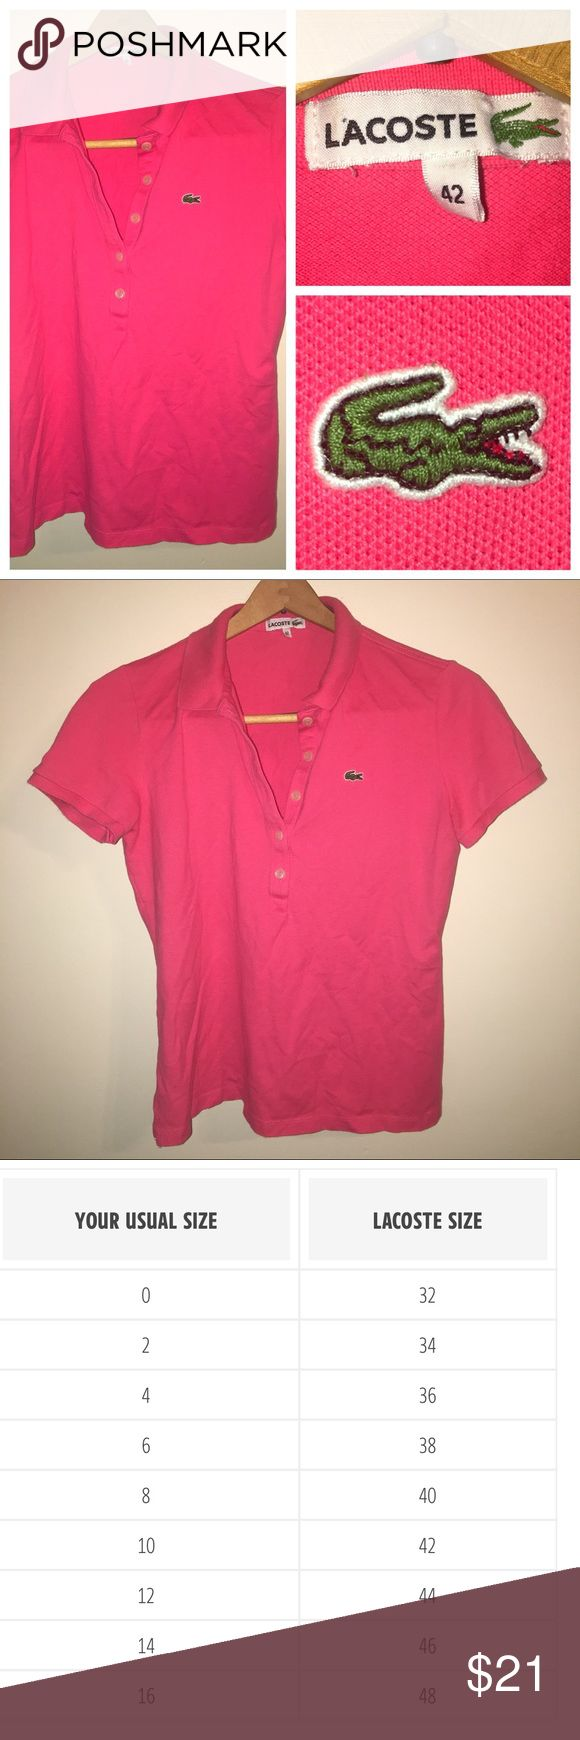 Lacoste 5-button Polo Cute Preppy Pink Polo. Goes Well With Shorts, Skirts, Or Pants. Fits size M/L. In Great Condition. Lacoste Tops